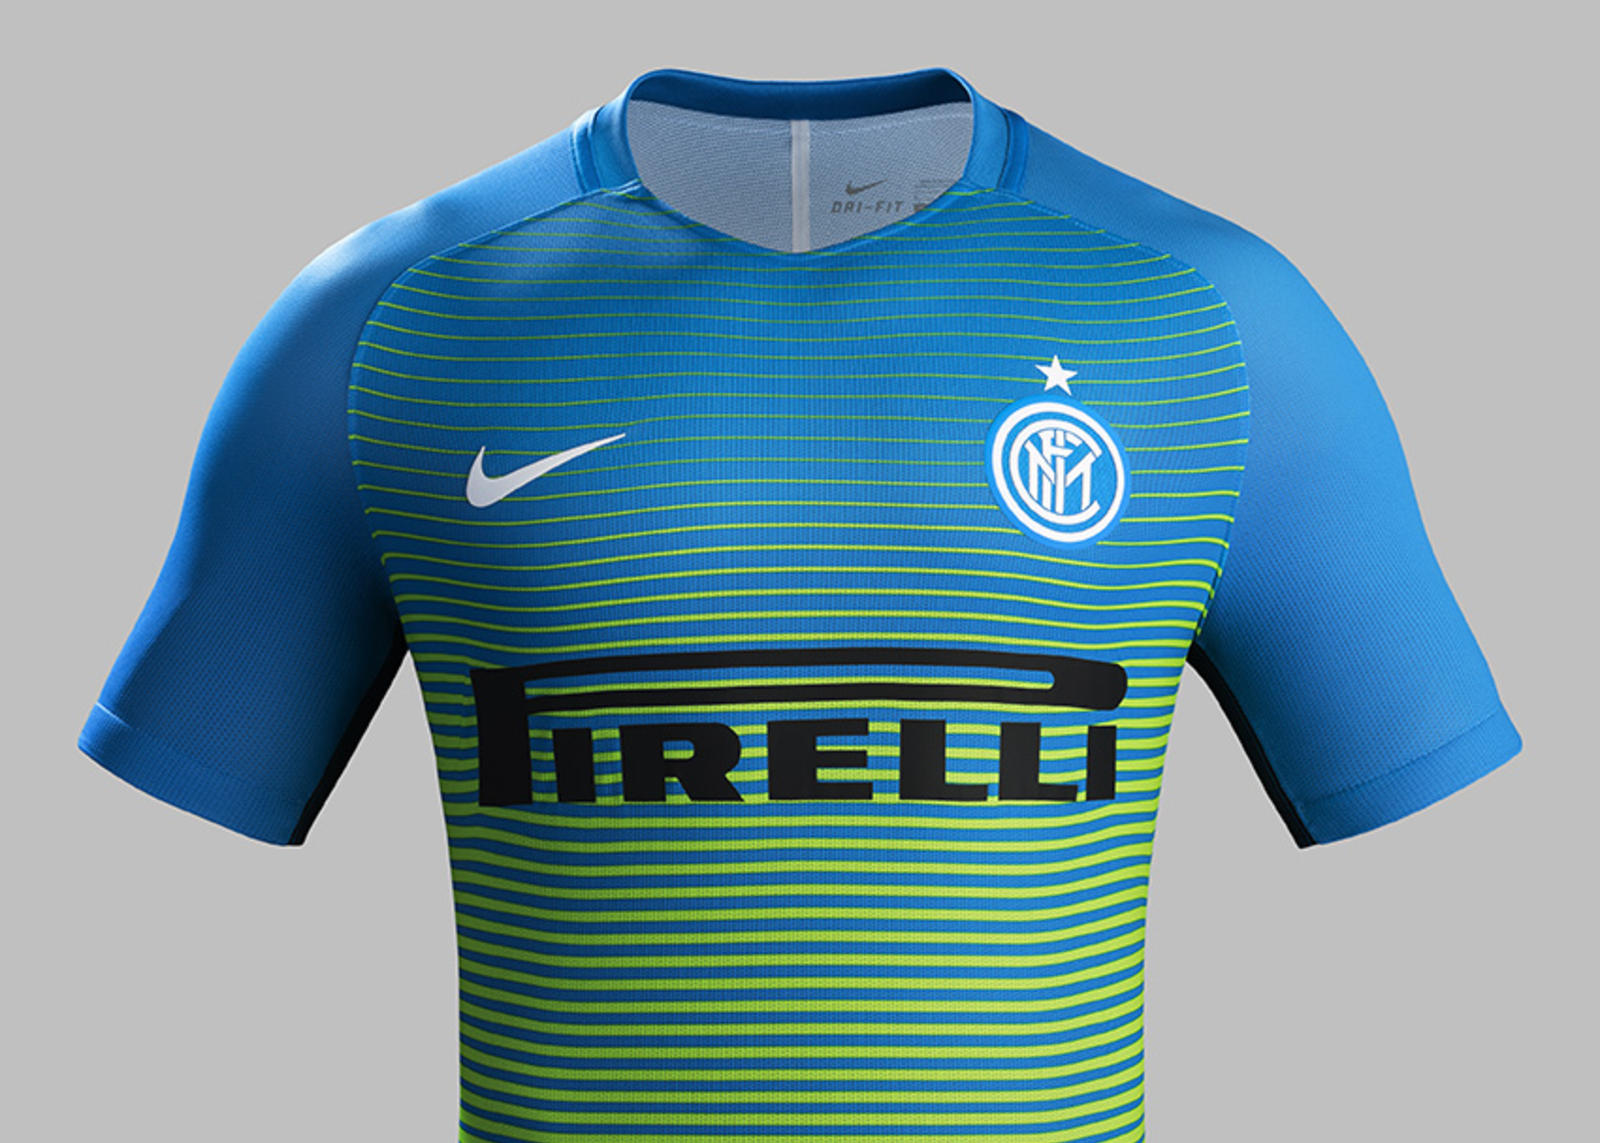 cheaper 662d8 3bebd Inter Milan Third Kit 2016-17 - Nike News